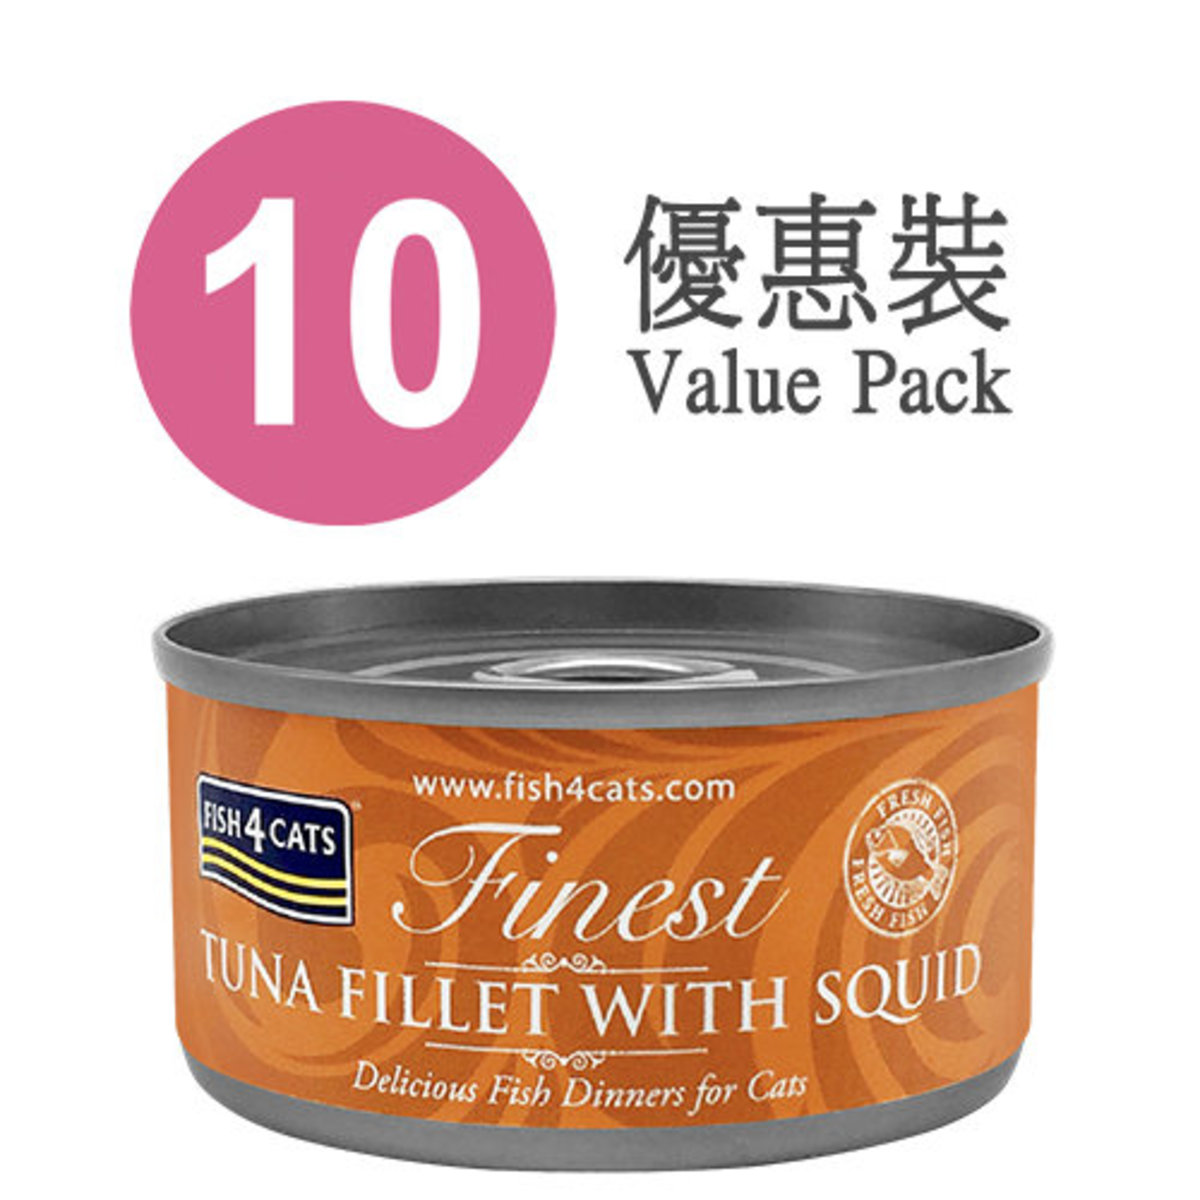 Finest Tuna Fillet With Squid Cat Tins (70g x 10) #CTW059_10